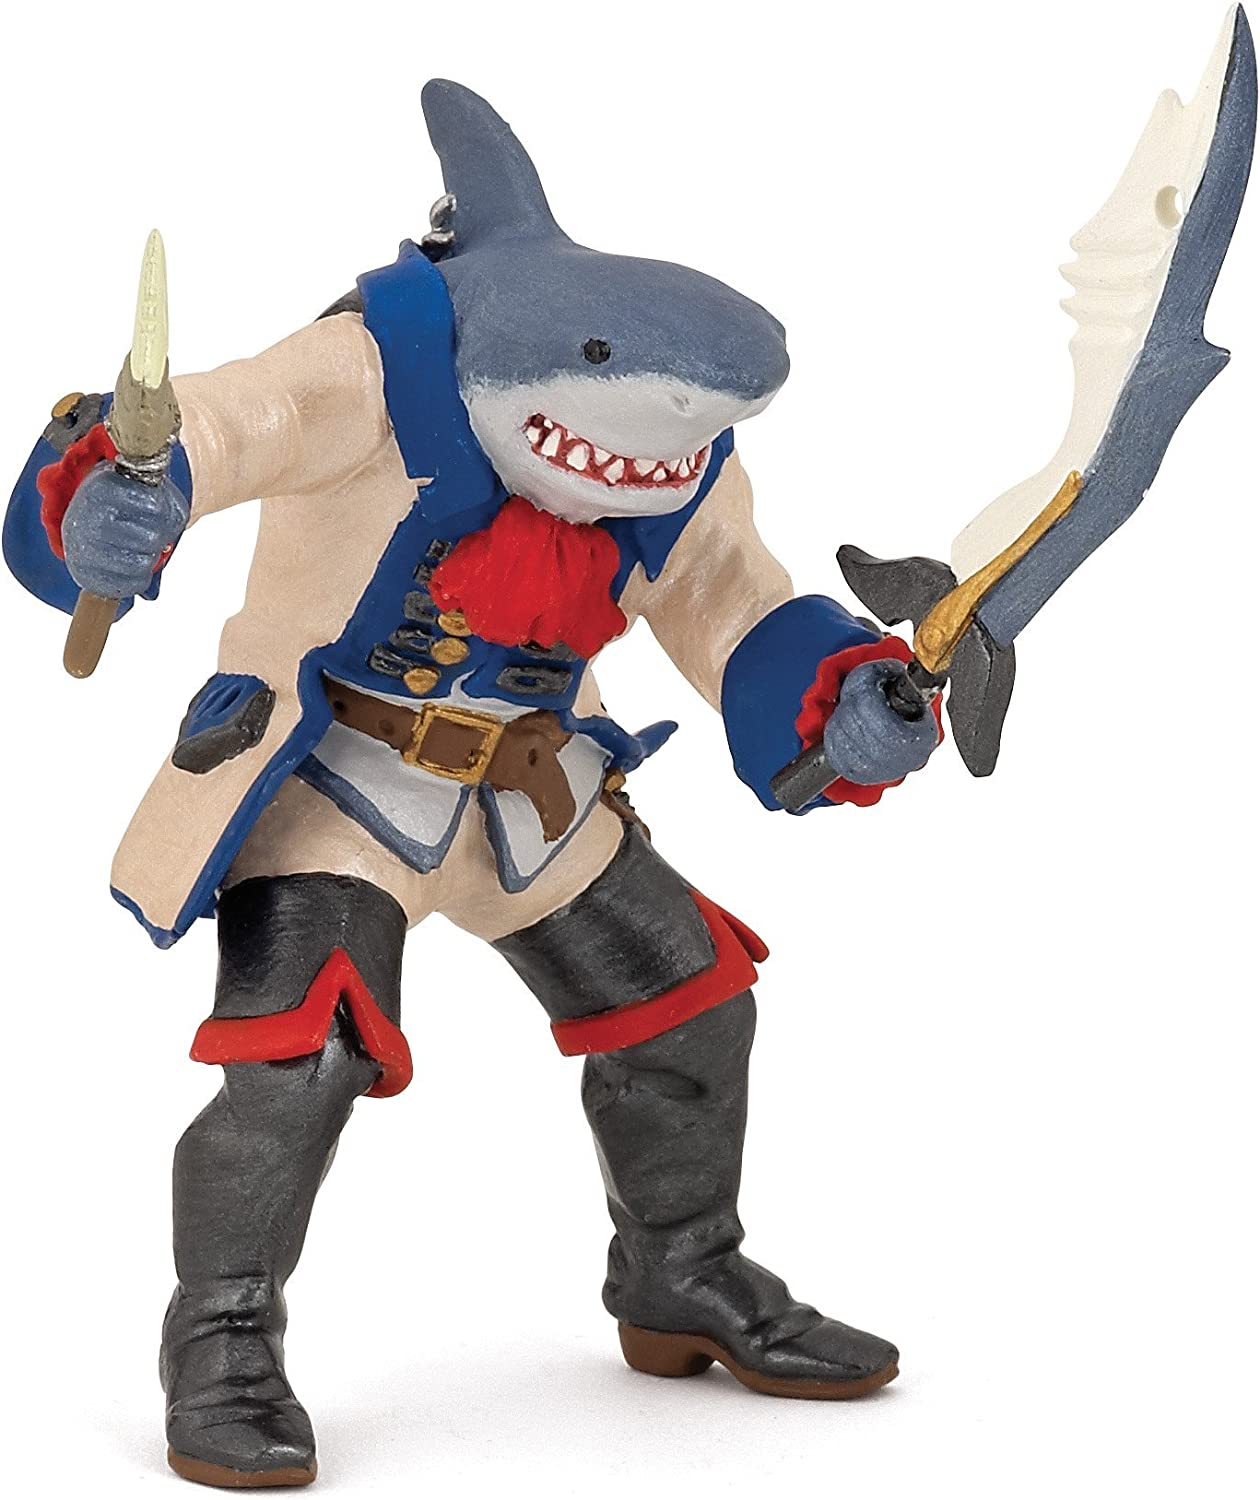 Papo Pirates and Corsairs Figure, Shark Mutant Pirate